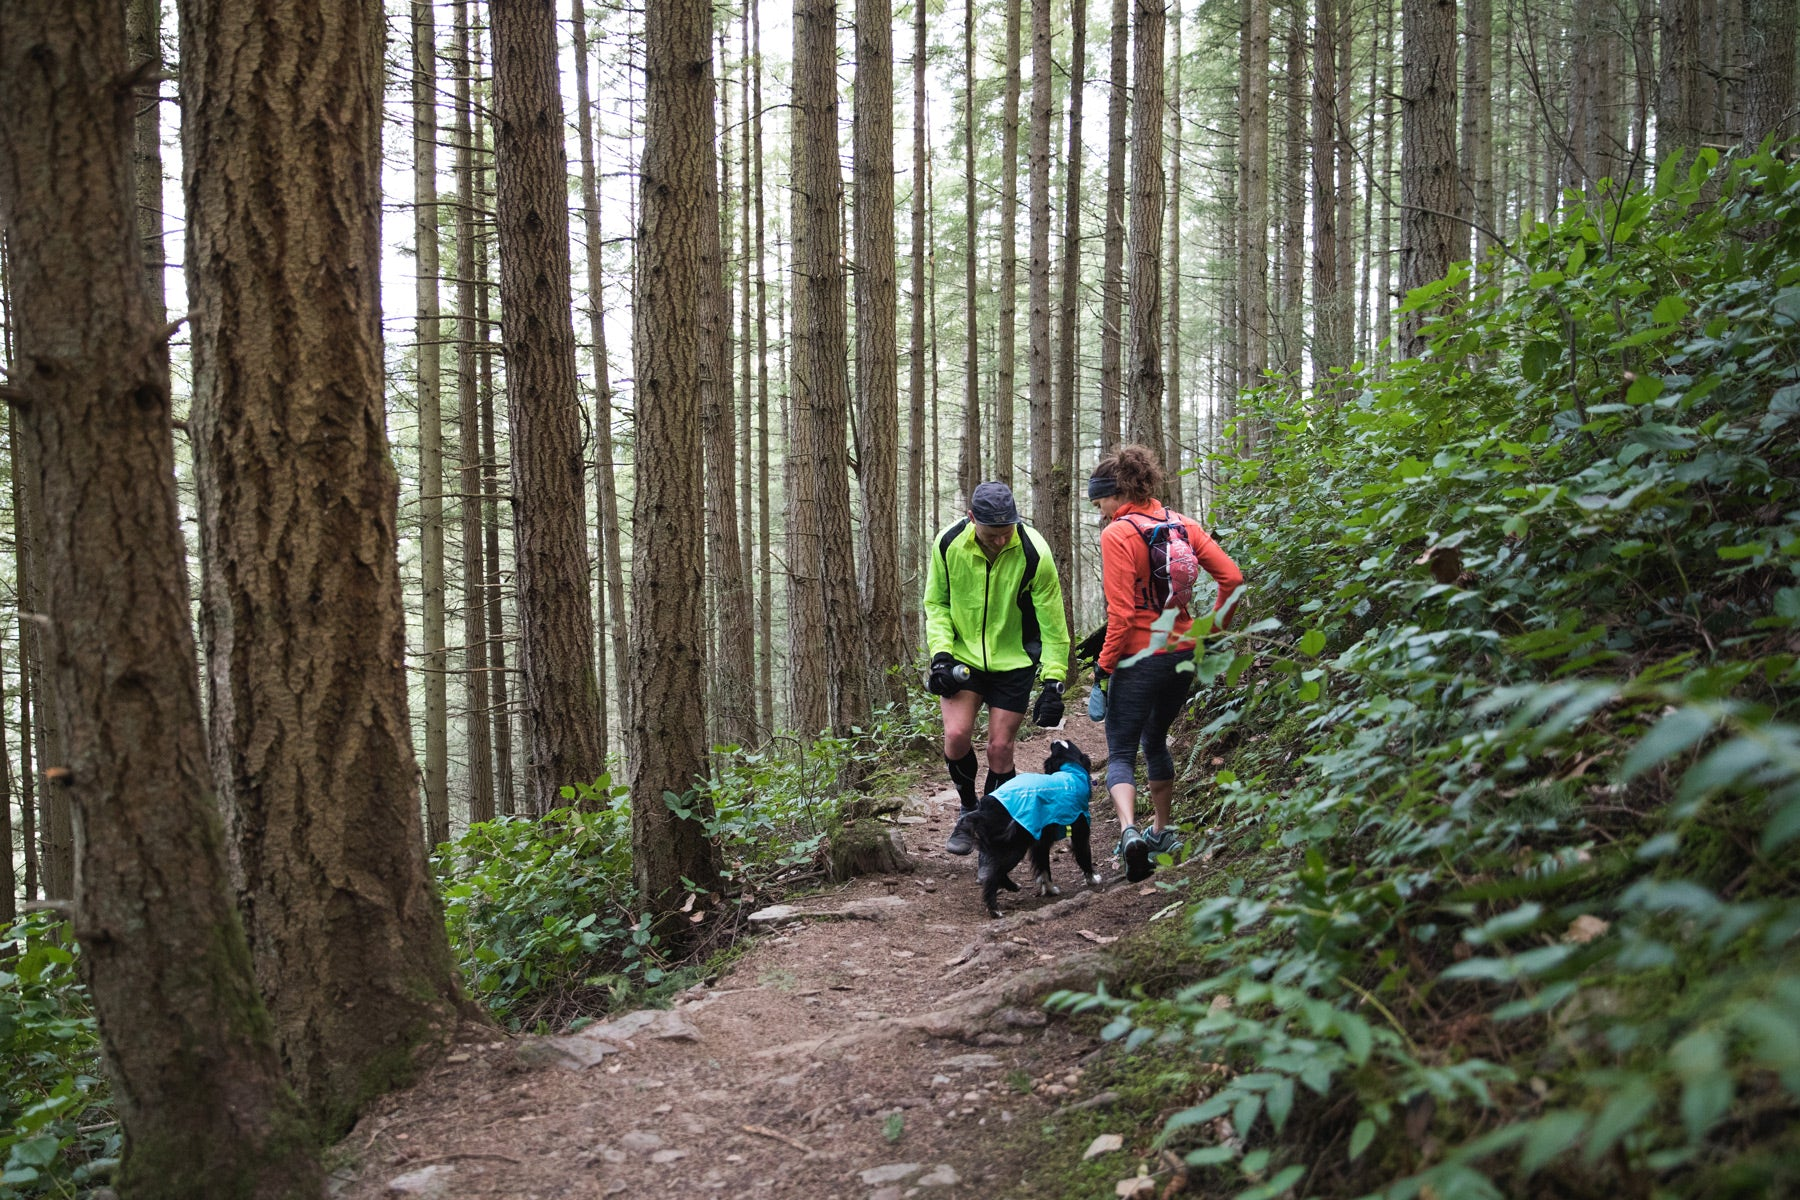 Krissy & PD greeting another trail user while on a trail run in the woods.